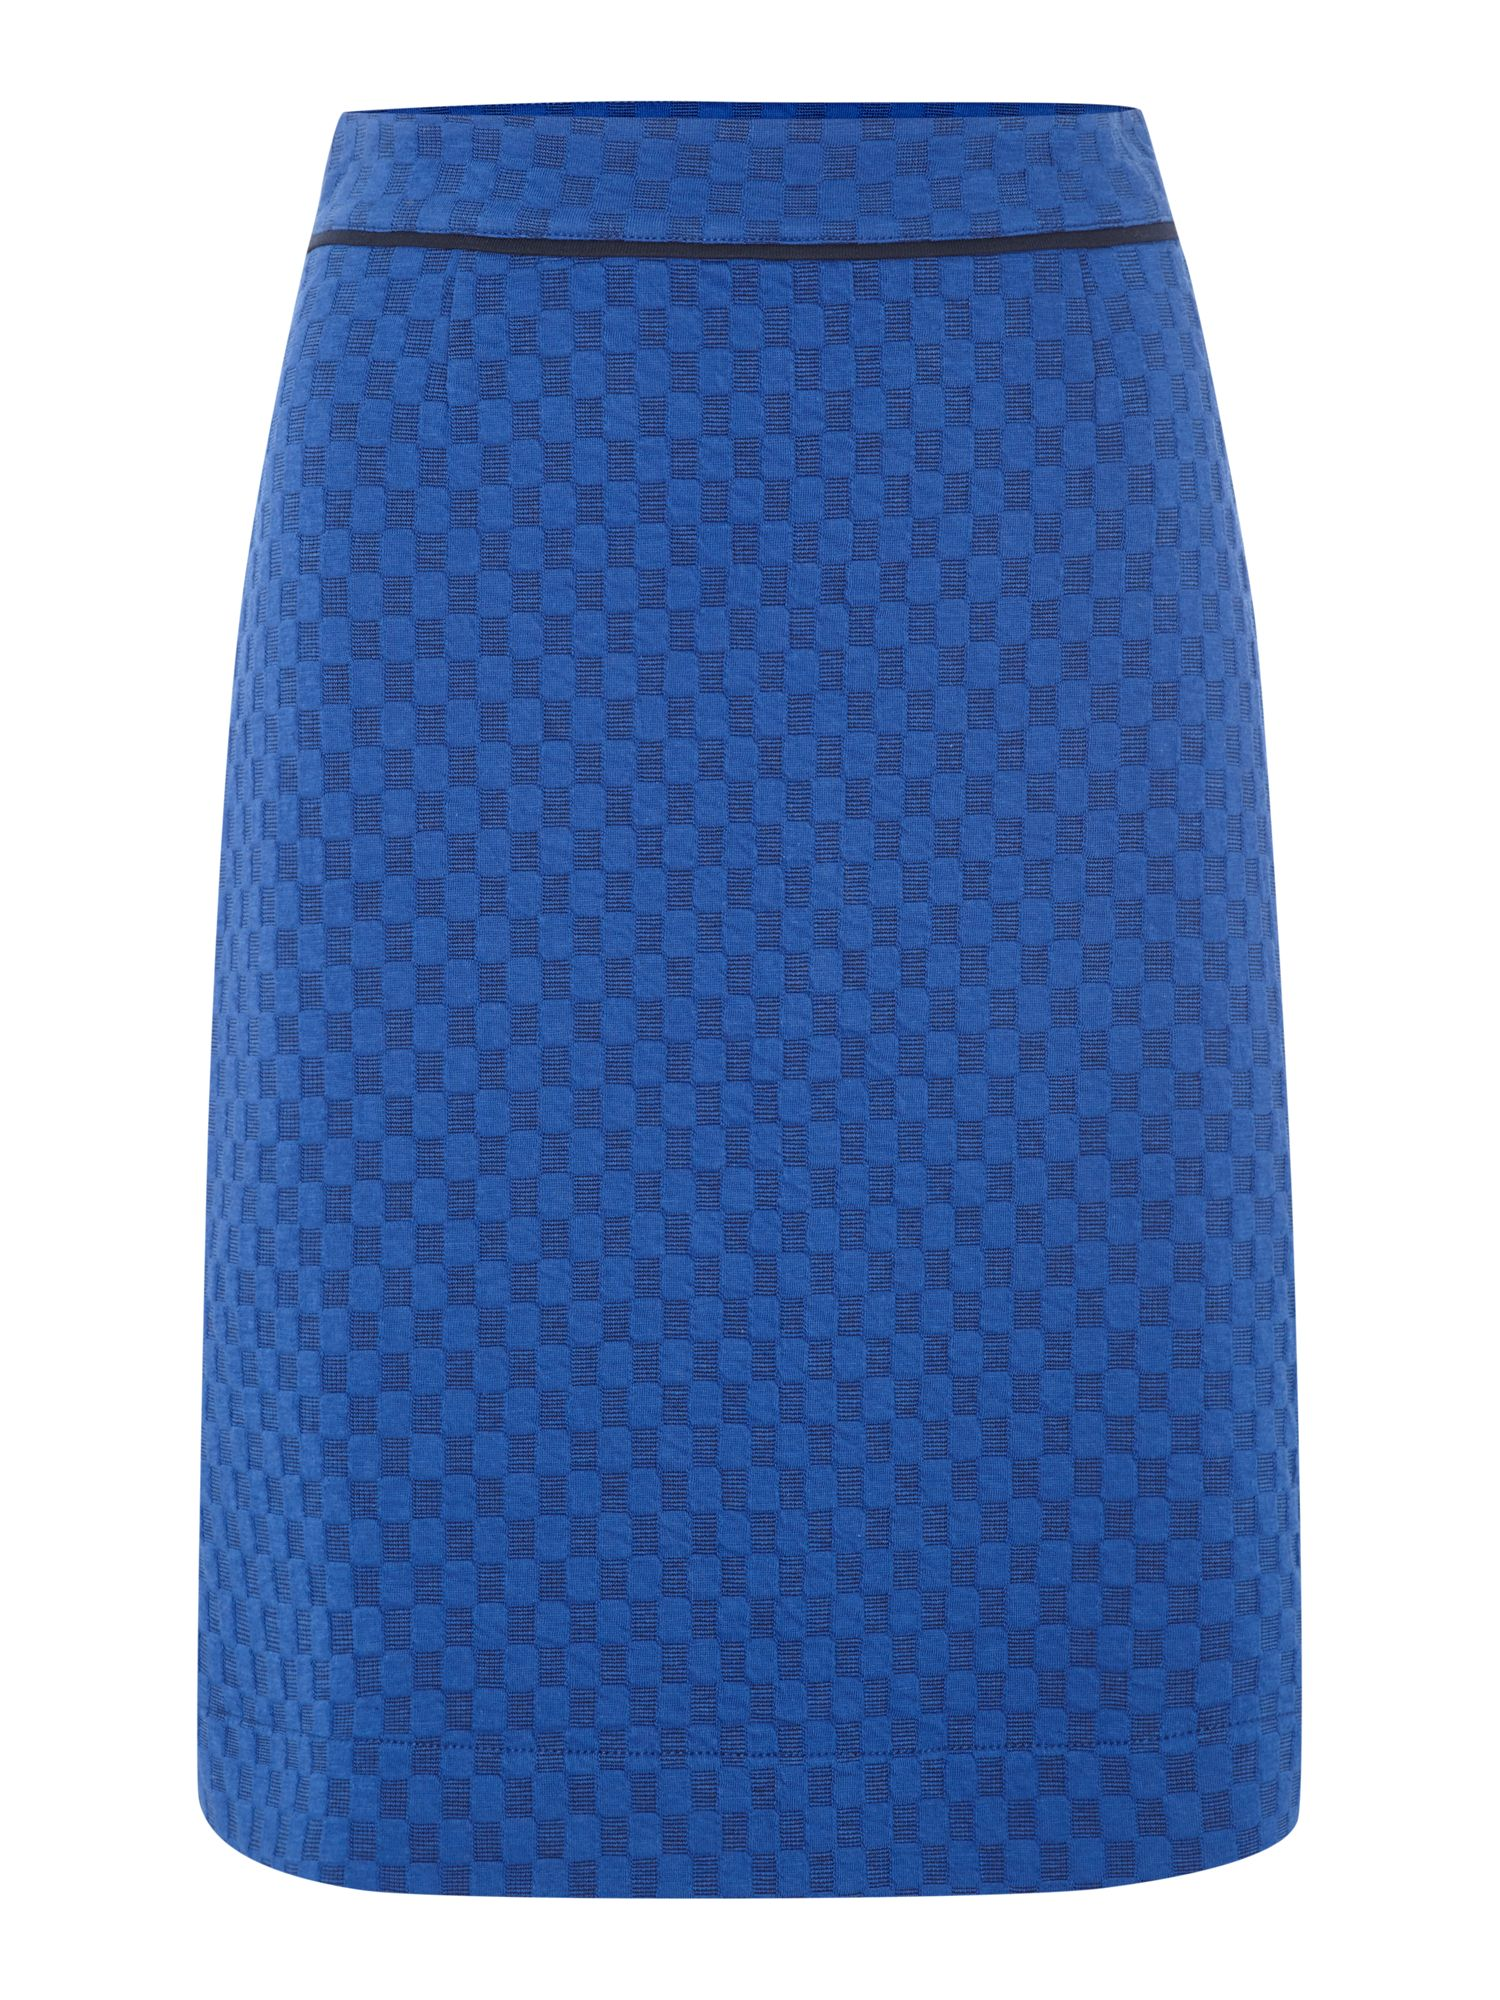 Skirt with square jacquard